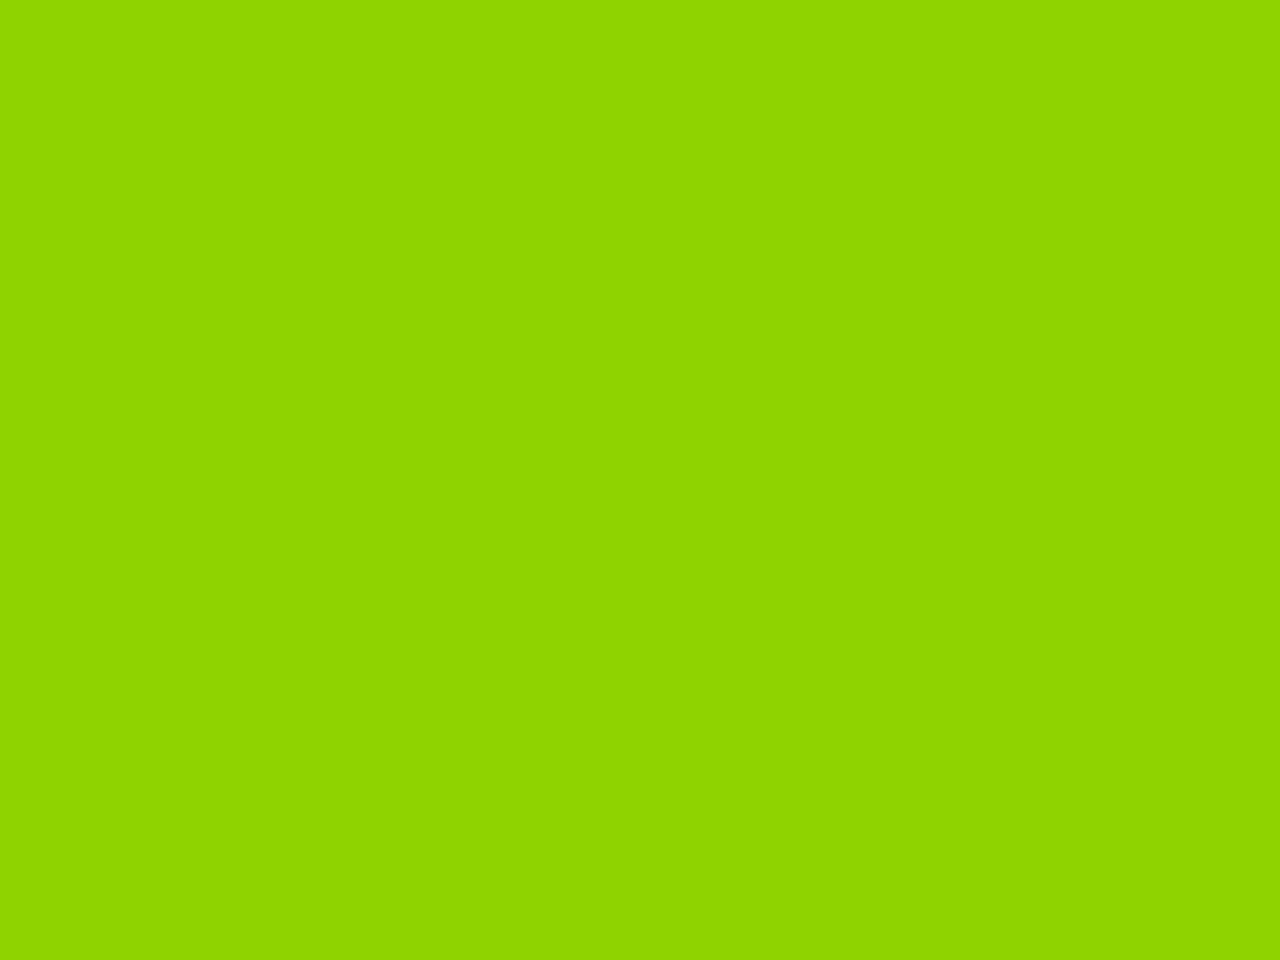 1280x960 Sheen Green Solid Color Background